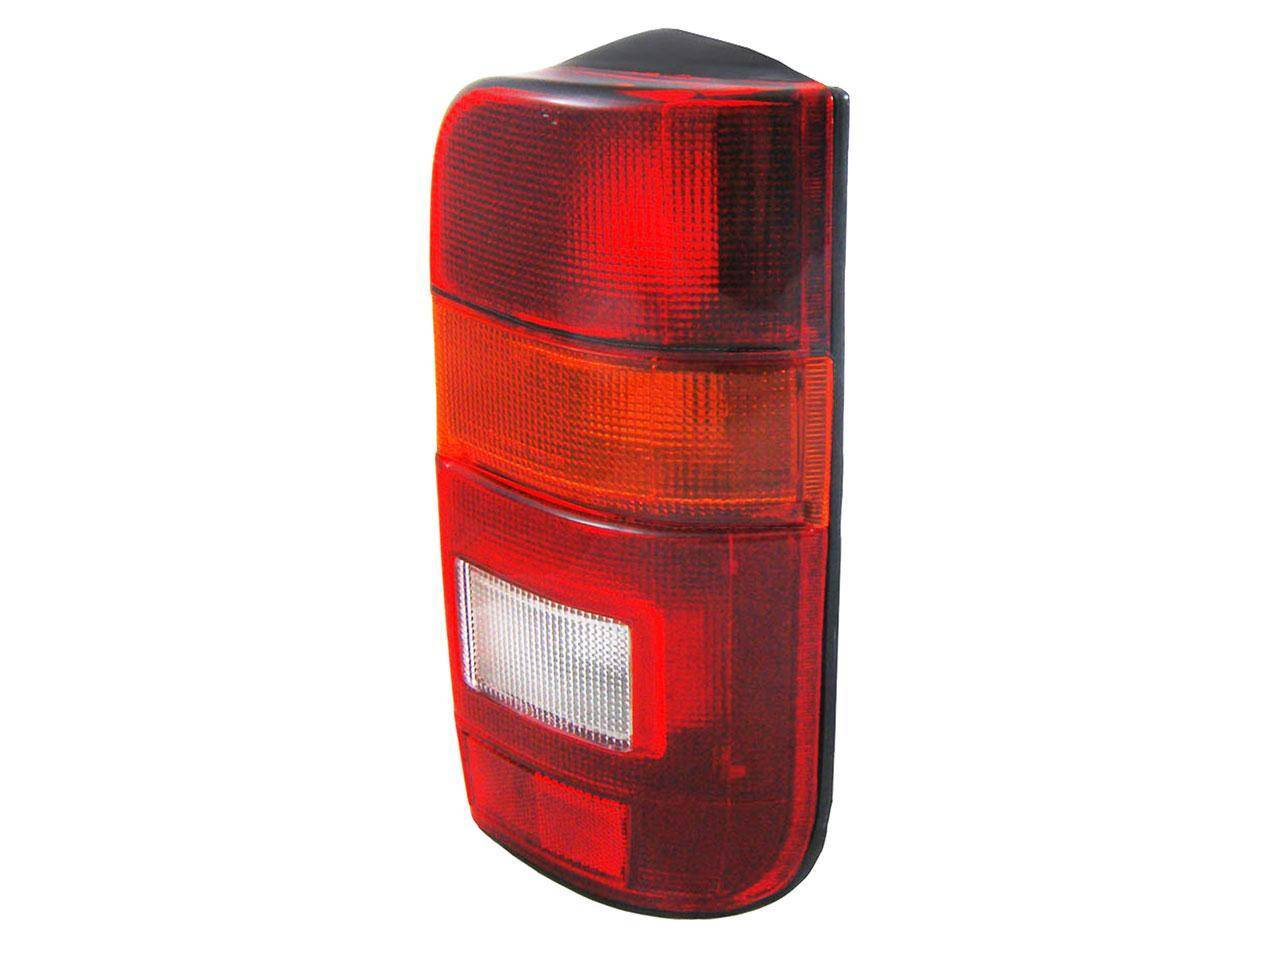 Toyota Hiace Tail Light Hi Ace Van 89 05 Rhs Right Lamp 04